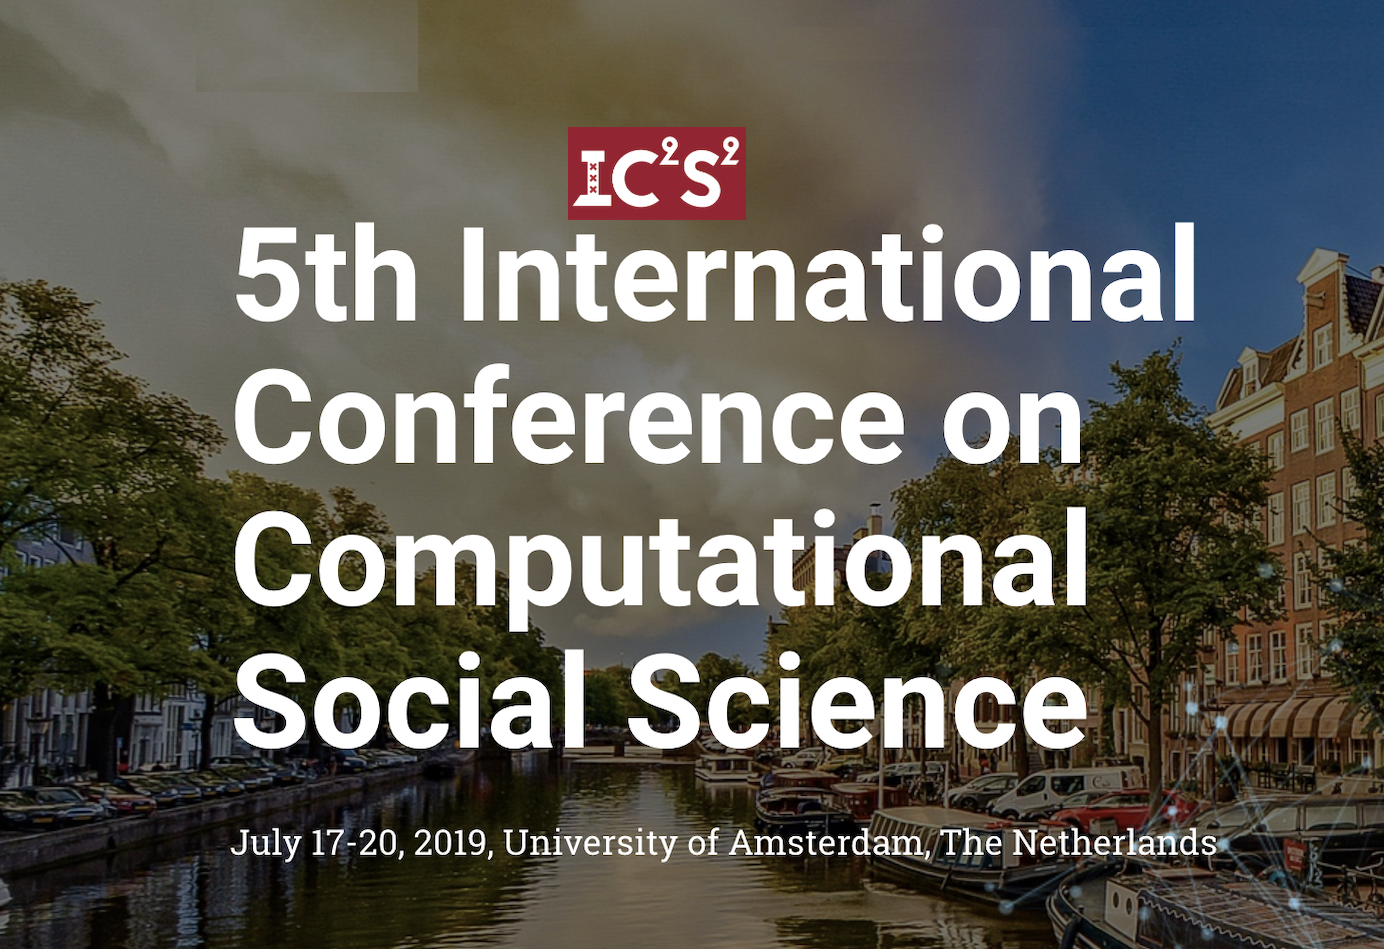 Conference presentation in IC²S² 2019: 5th International